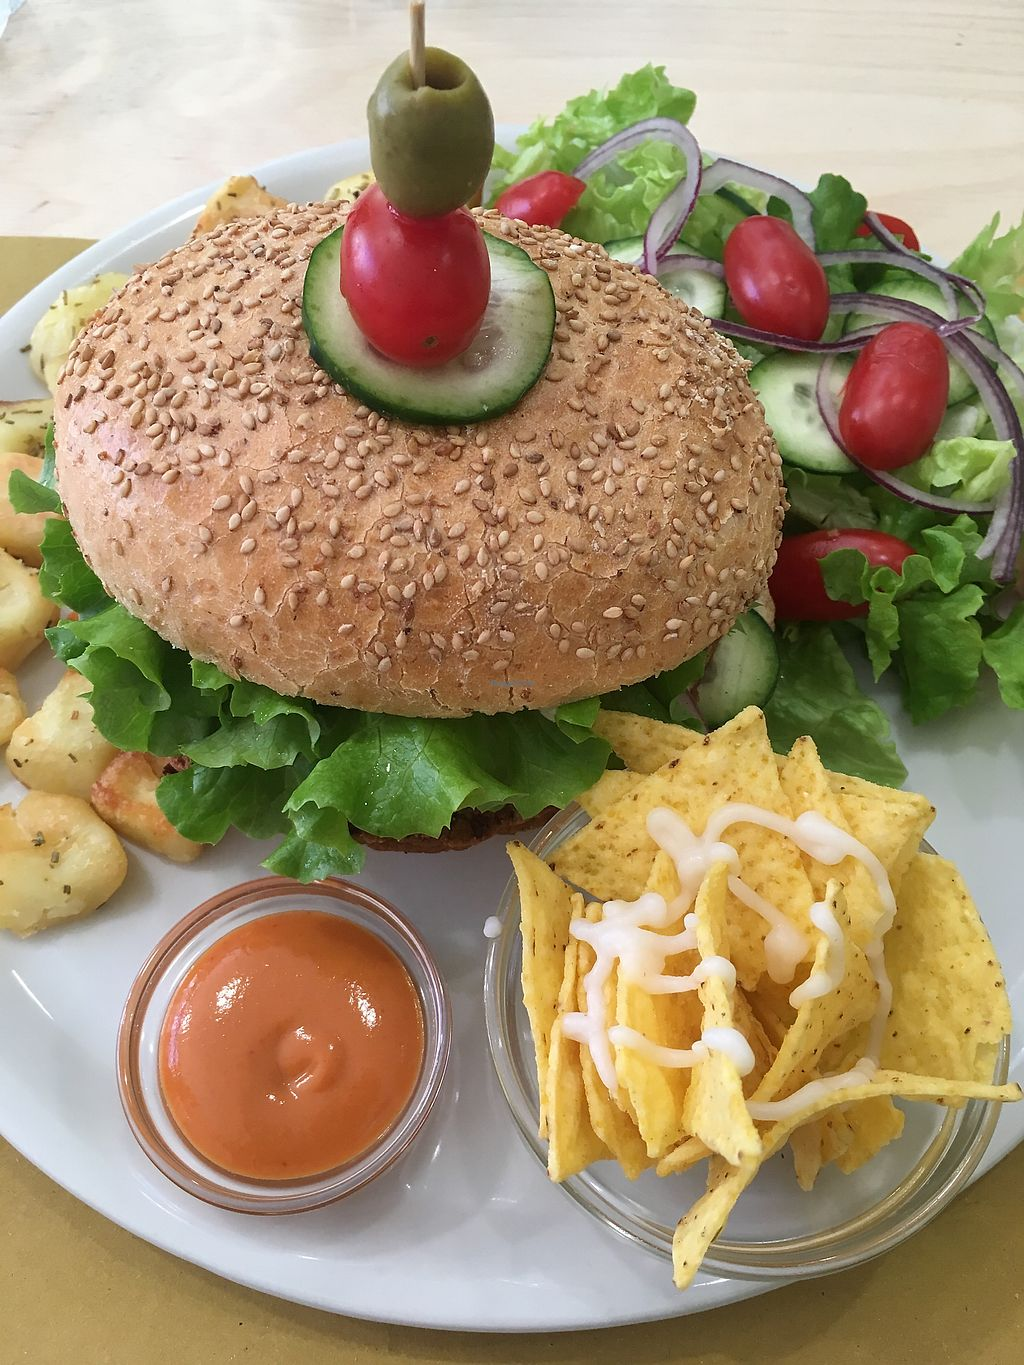 "Photo of Universo Vegano  by <a href=""/members/profile/hokusai77"">hokusai77</a> <br/>Bean burger, salad, rosemary baked potatoes, nachos and jalapeño sauce <br/> November 30, 2017  - <a href='/contact/abuse/image/41571/330877'>Report</a>"